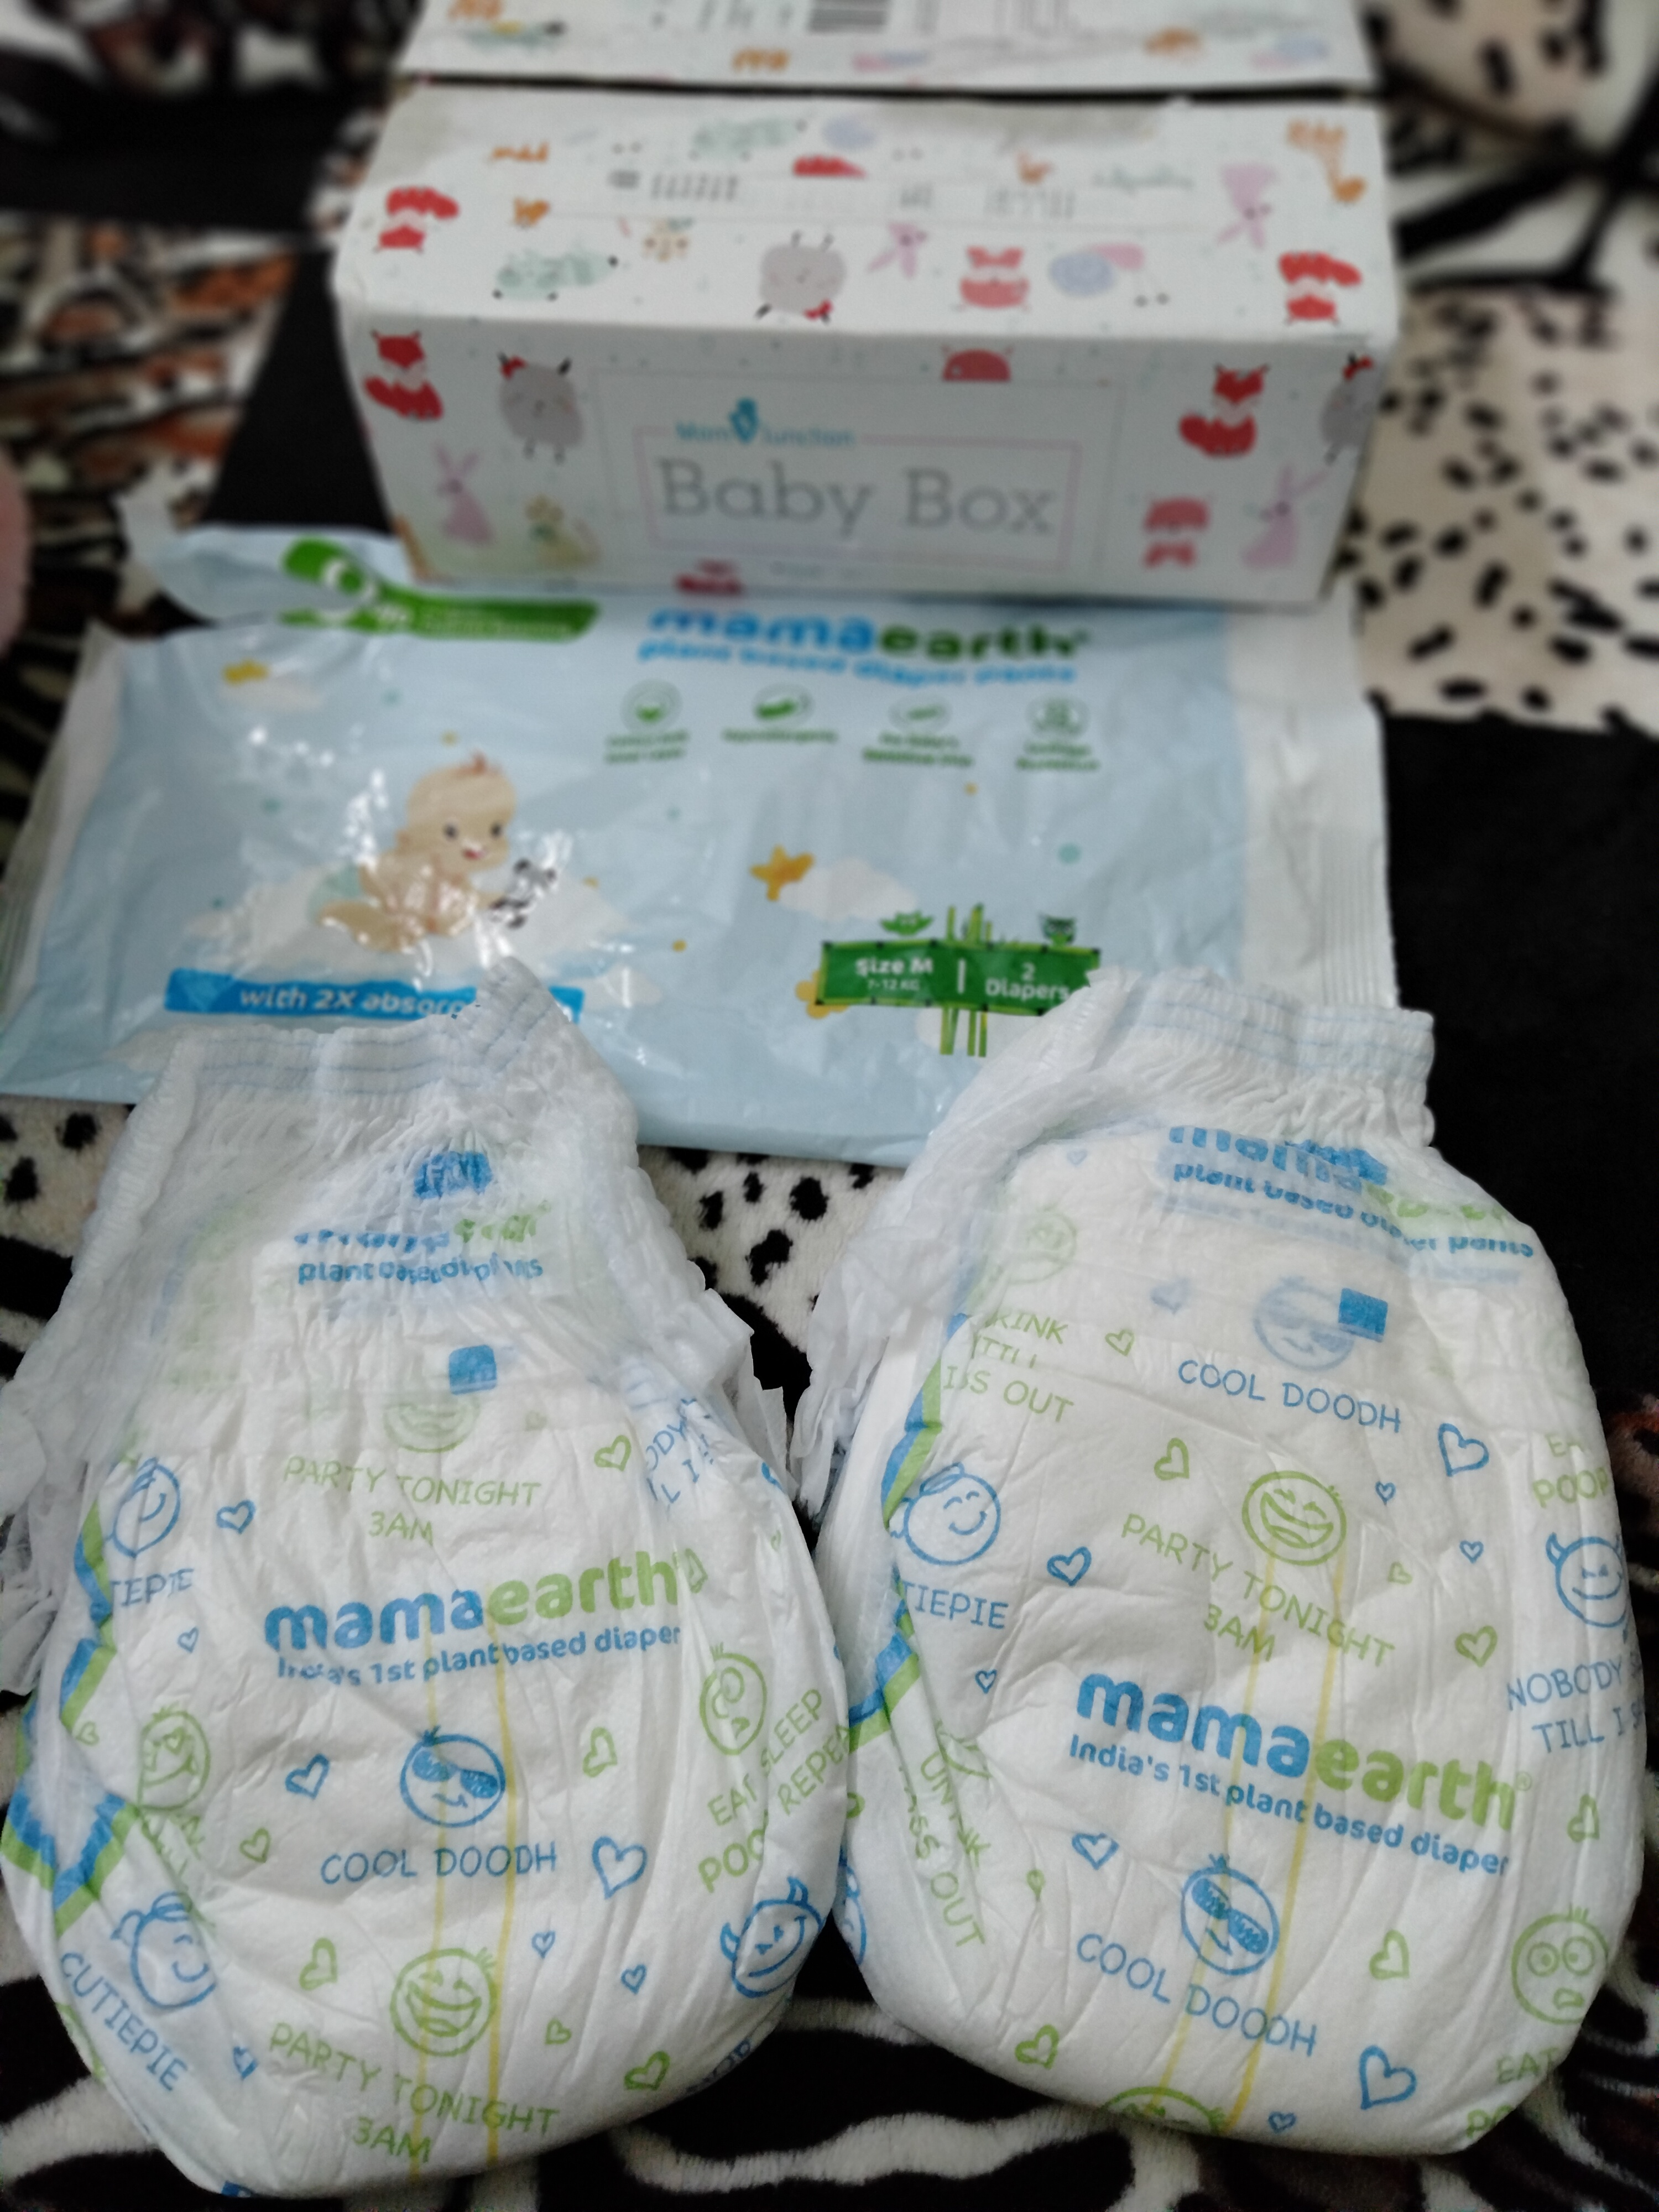 Mamaearth Plant Based Diaper Pants-Best Diaper Pants, Highly Recommend-By babytuber_india